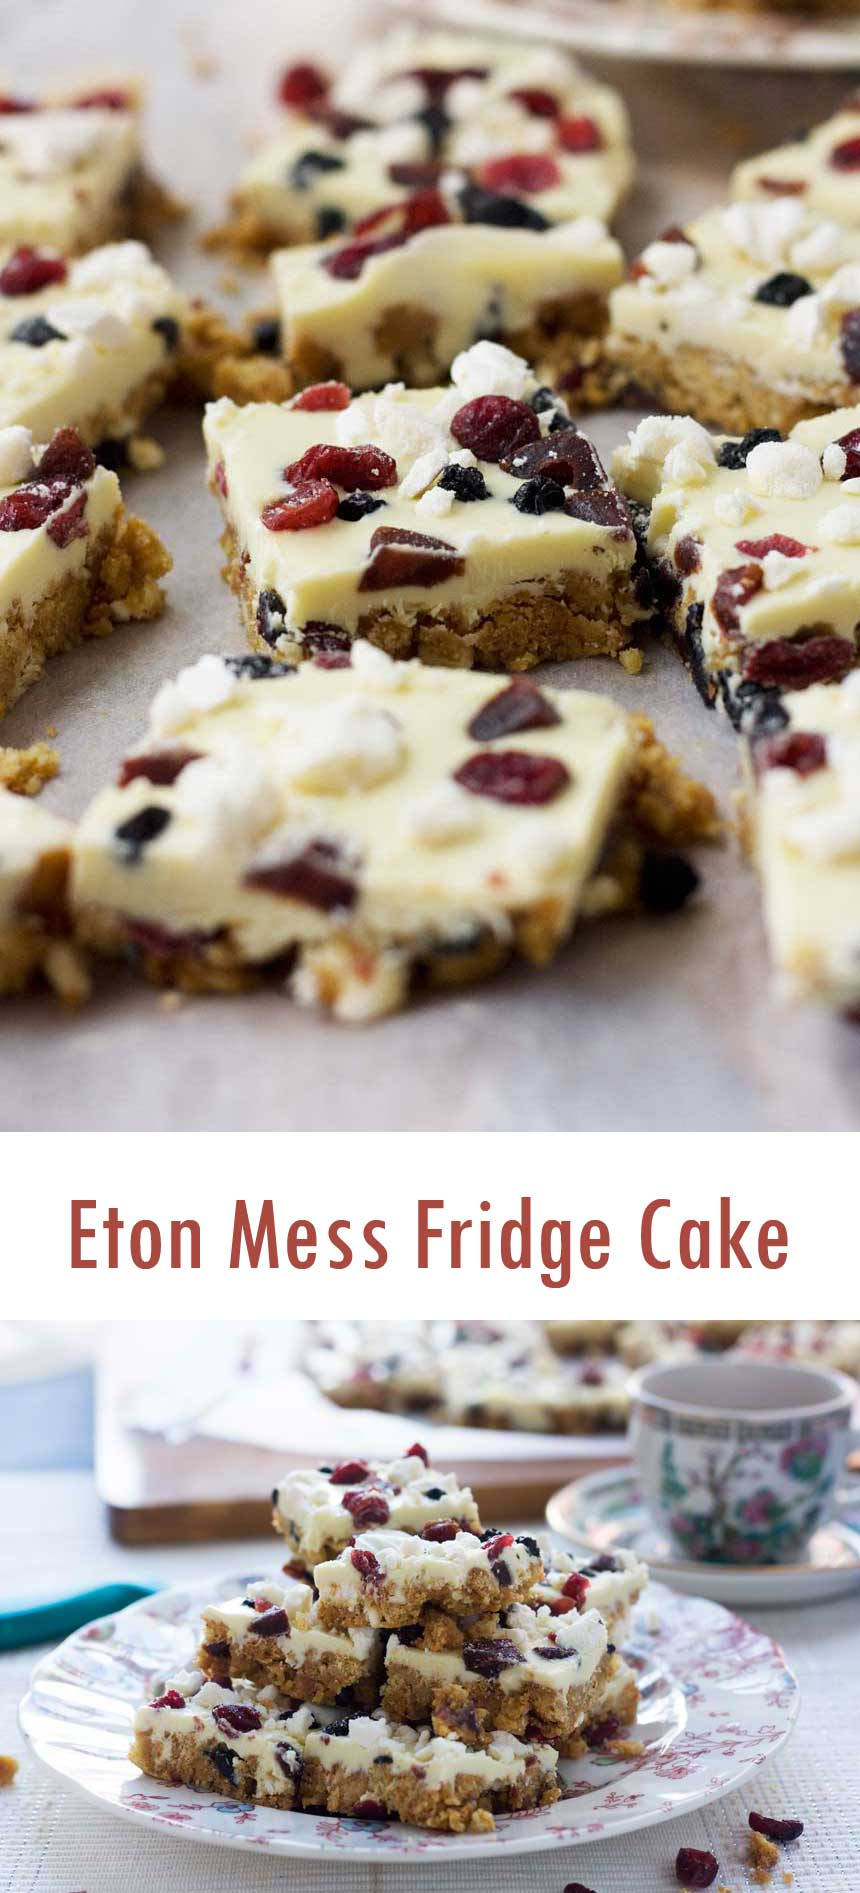 Eton Mess Fridge cake - with all the flavours of a British Eton Mess!